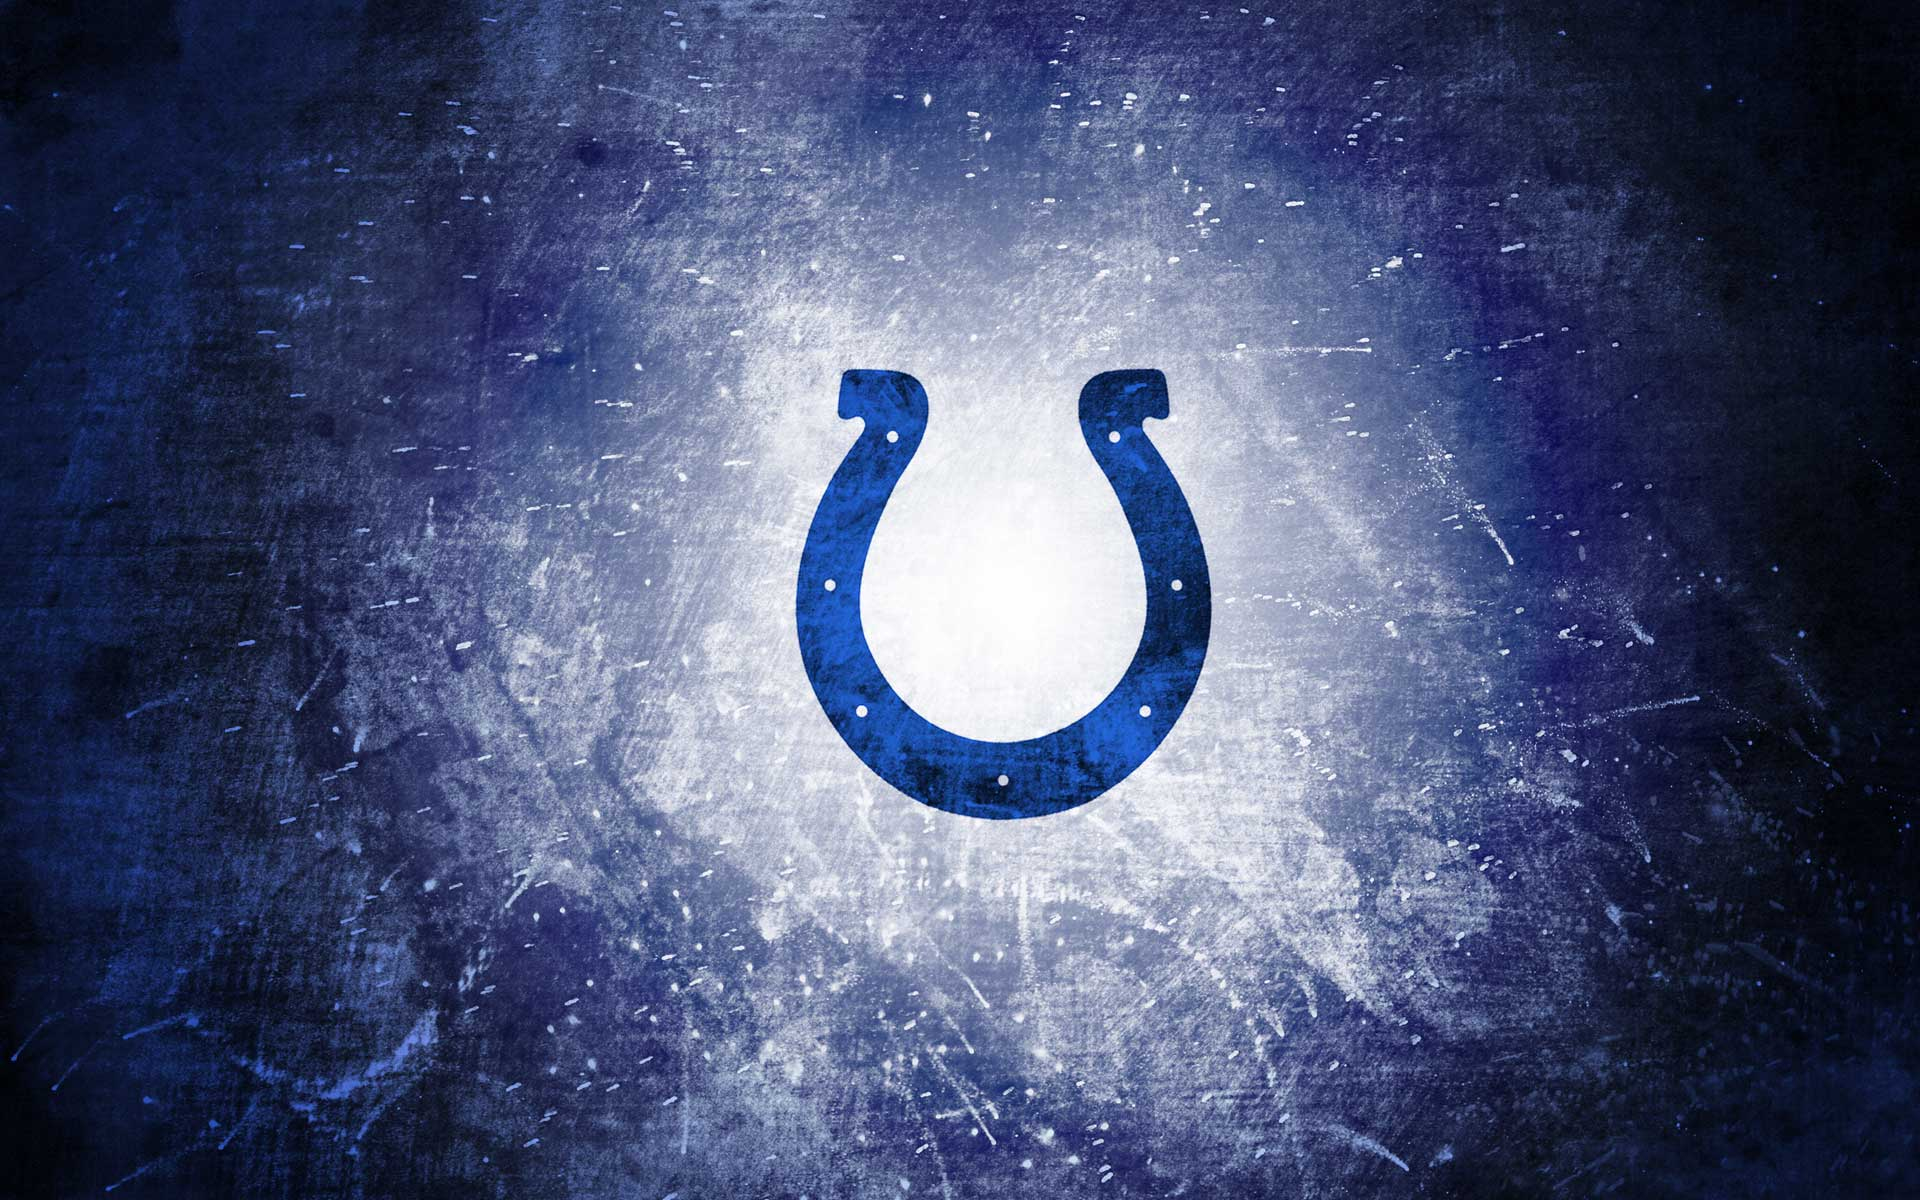 Indianapolis Colts desktop image Indianapolis Colts wallpapers 1920x1200